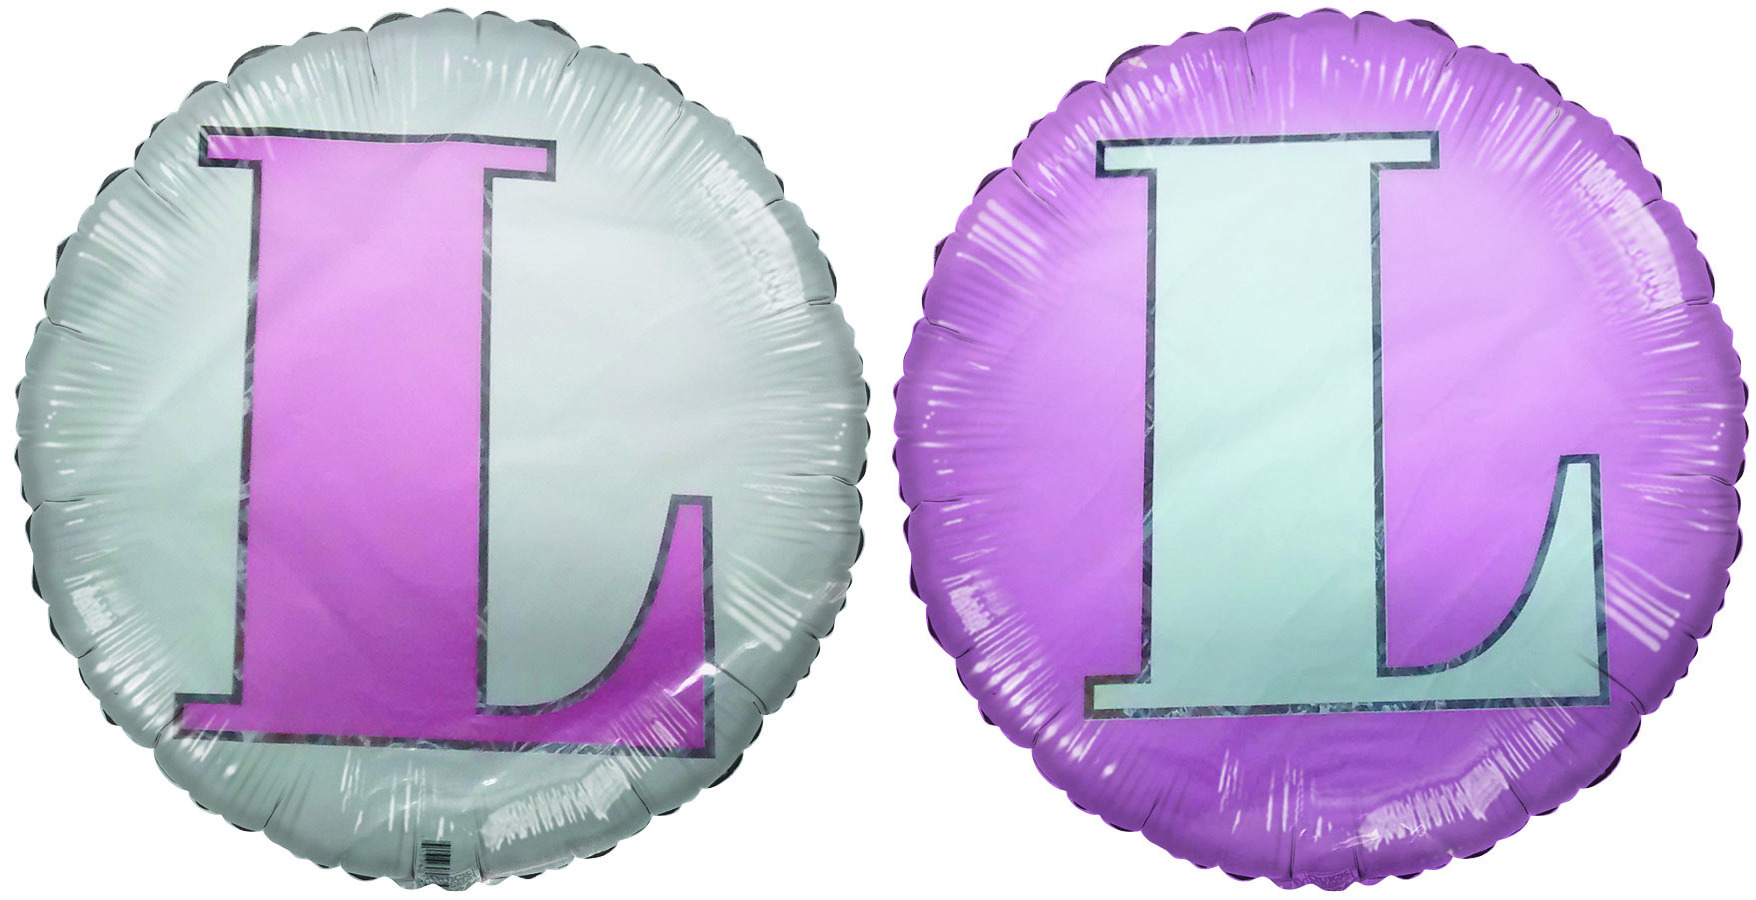 18 Classic Letter Balloon Letter L Pink White